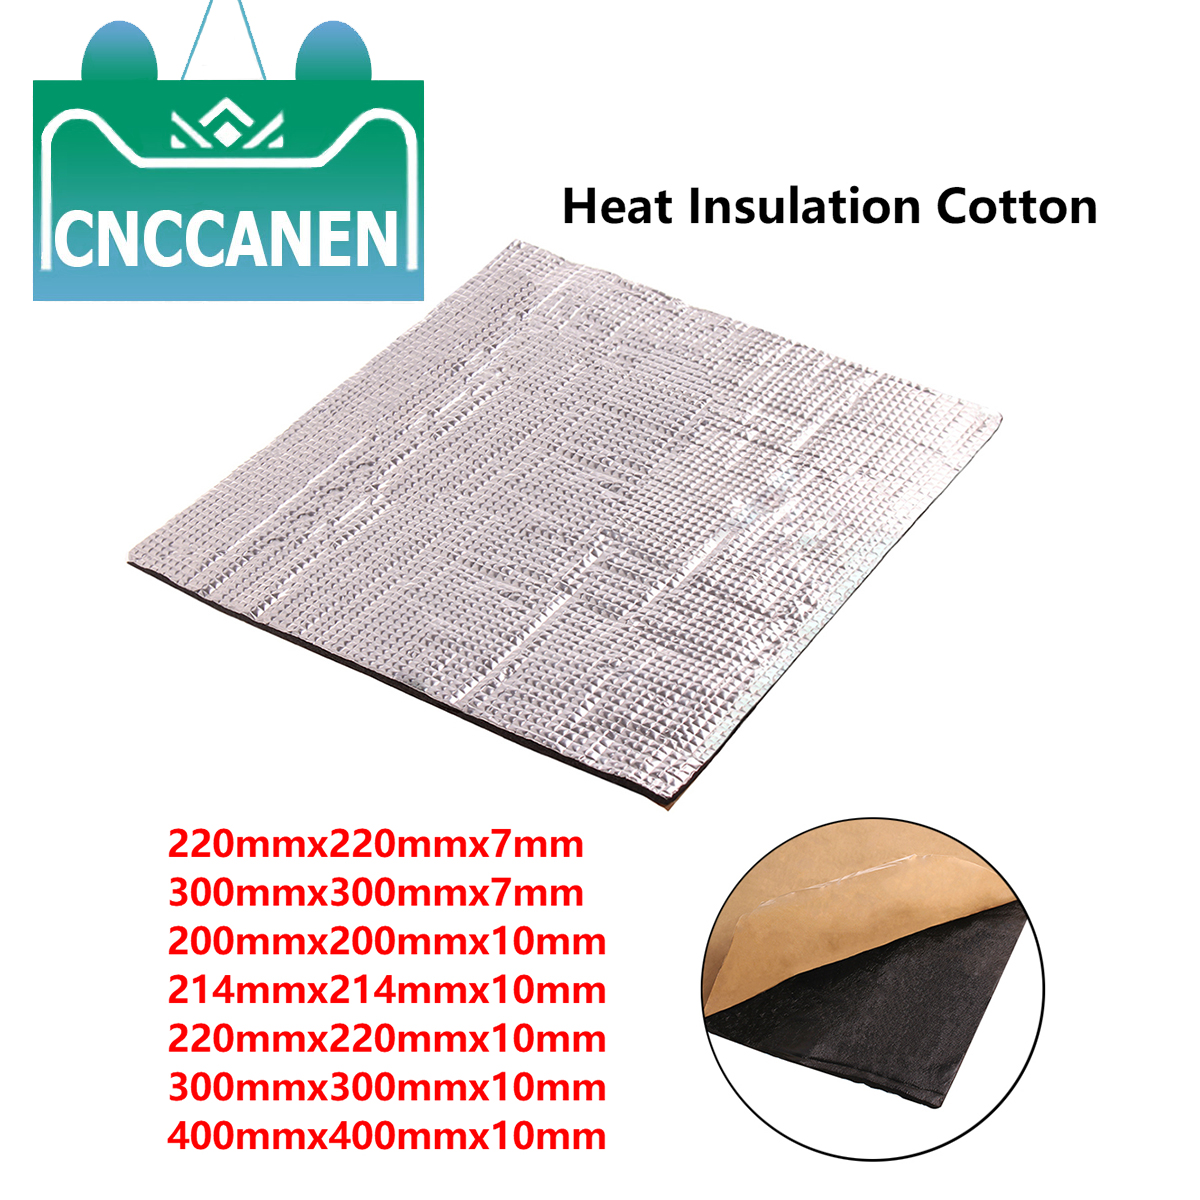 3D Printer Parts Heat Insulation Cotton 220/300/400MM Heatbed Sticker Foil Self-adhesive Insulation Cotton For Heated Bed Plate